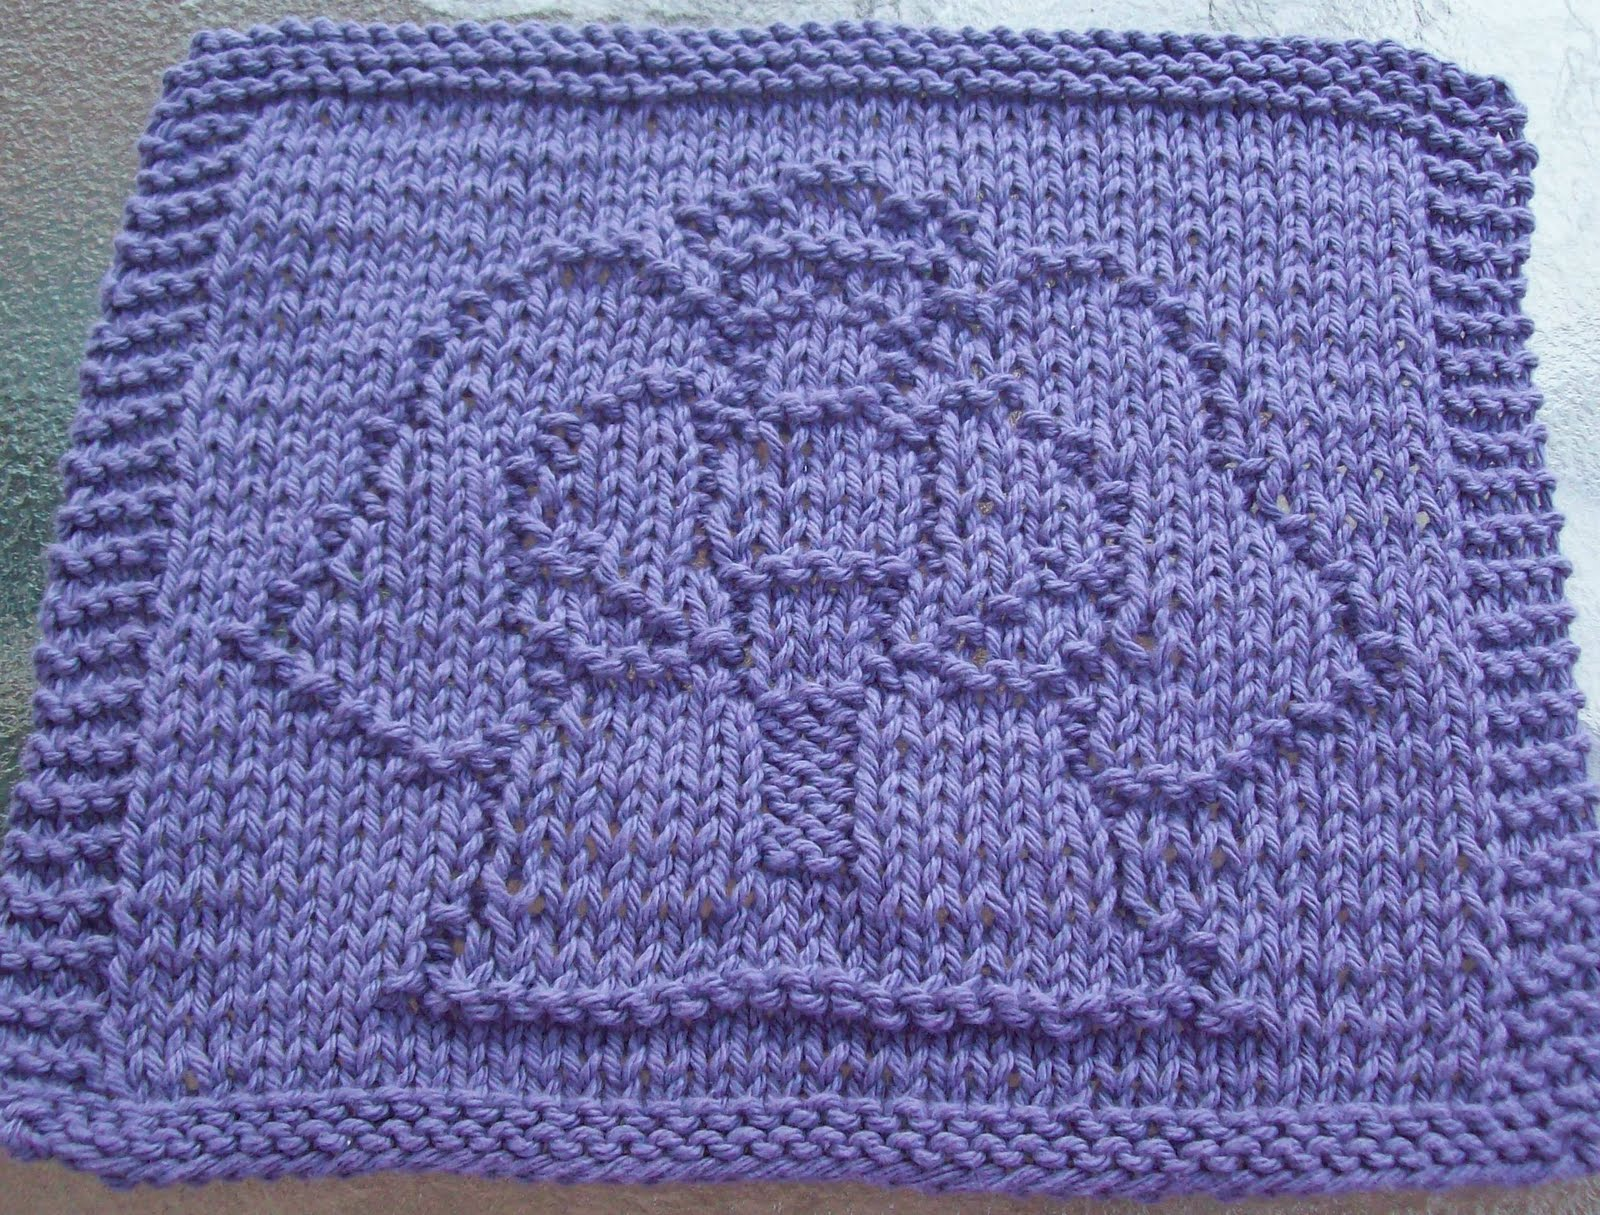 Knitting Pattern Design : DigKnitty Designs: Angel Knitting Knit Dishcloth Pattern